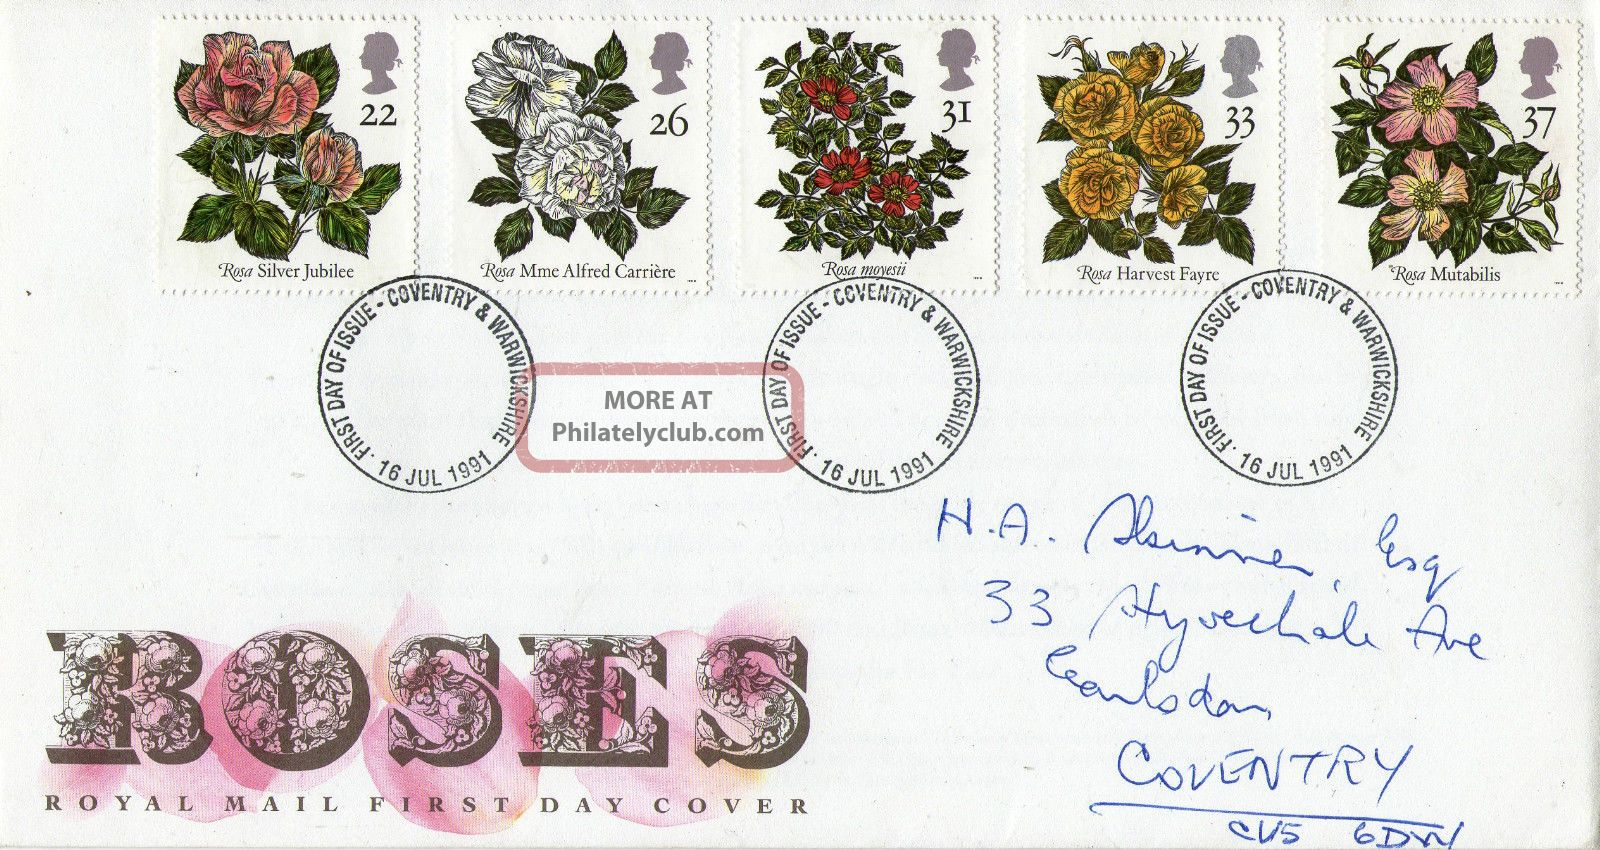 16 July 1991 Roses Royal Mail First Day Cover Coventry Fdi Topical Stamps photo